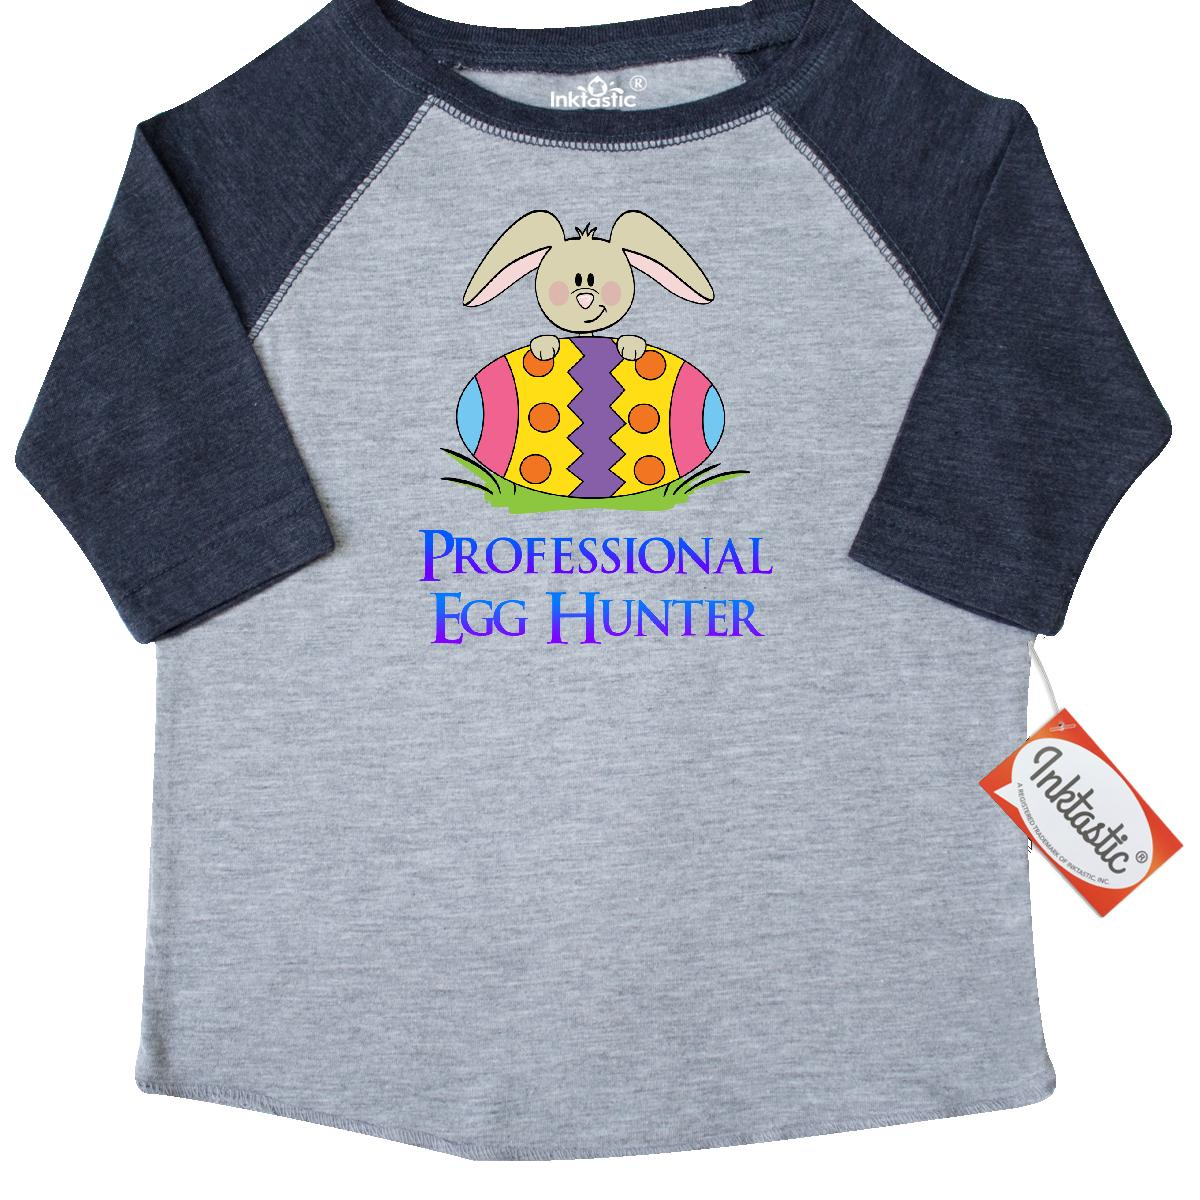 Inktastic Professional Egg Hunter-Bunny Toddler T-Shirt easter bunny hunter tees. gift child preschooler kid clothing apparel